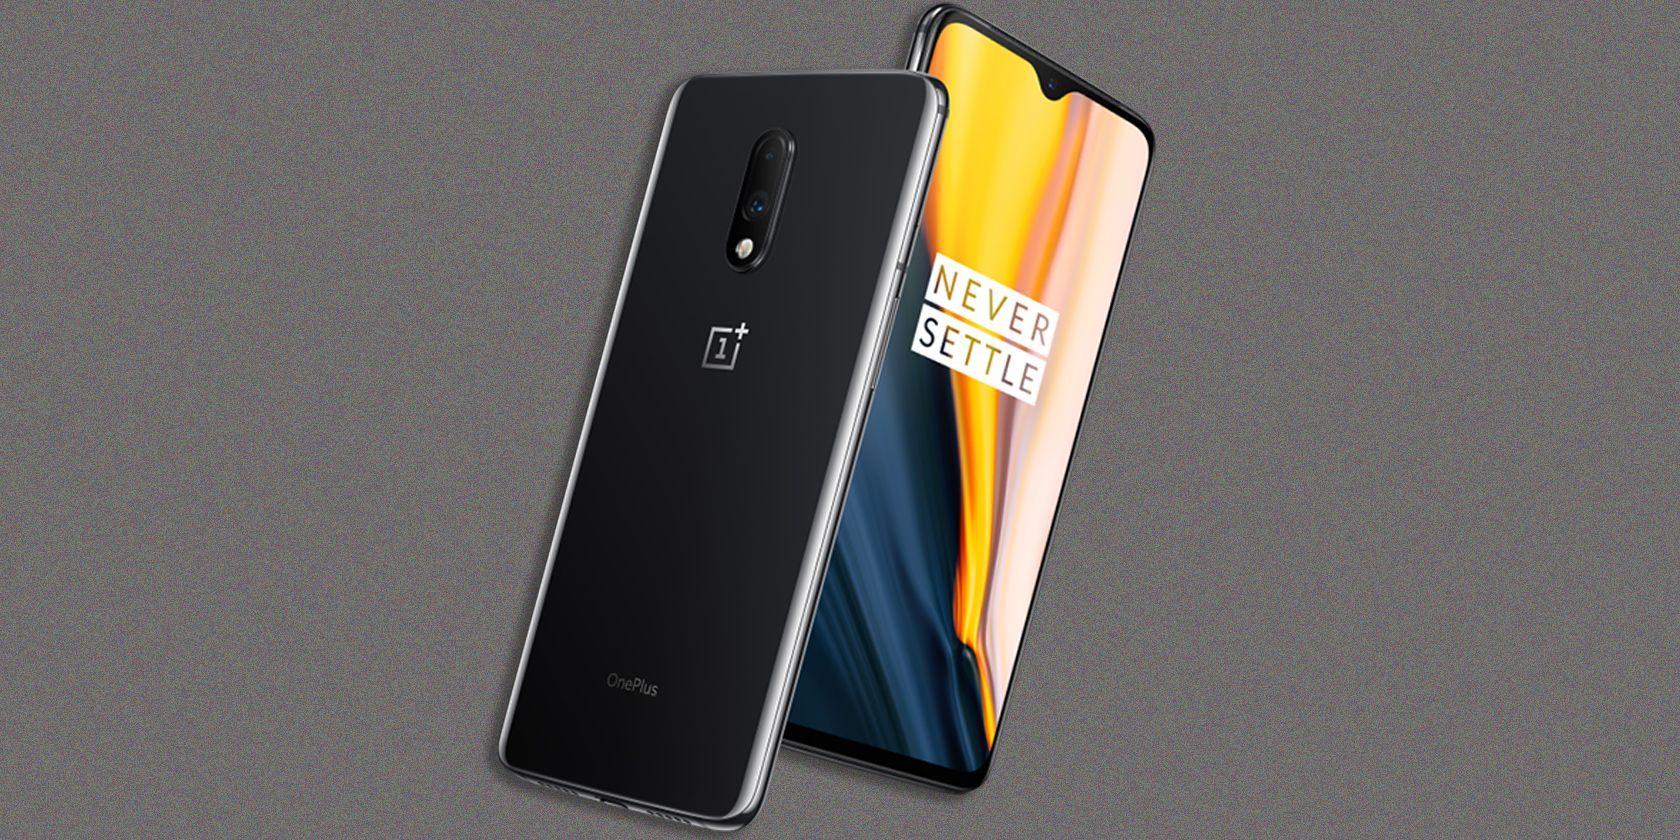 OnePlus Finally Rolls Out Android 11 for OnePlus 7 and 7T